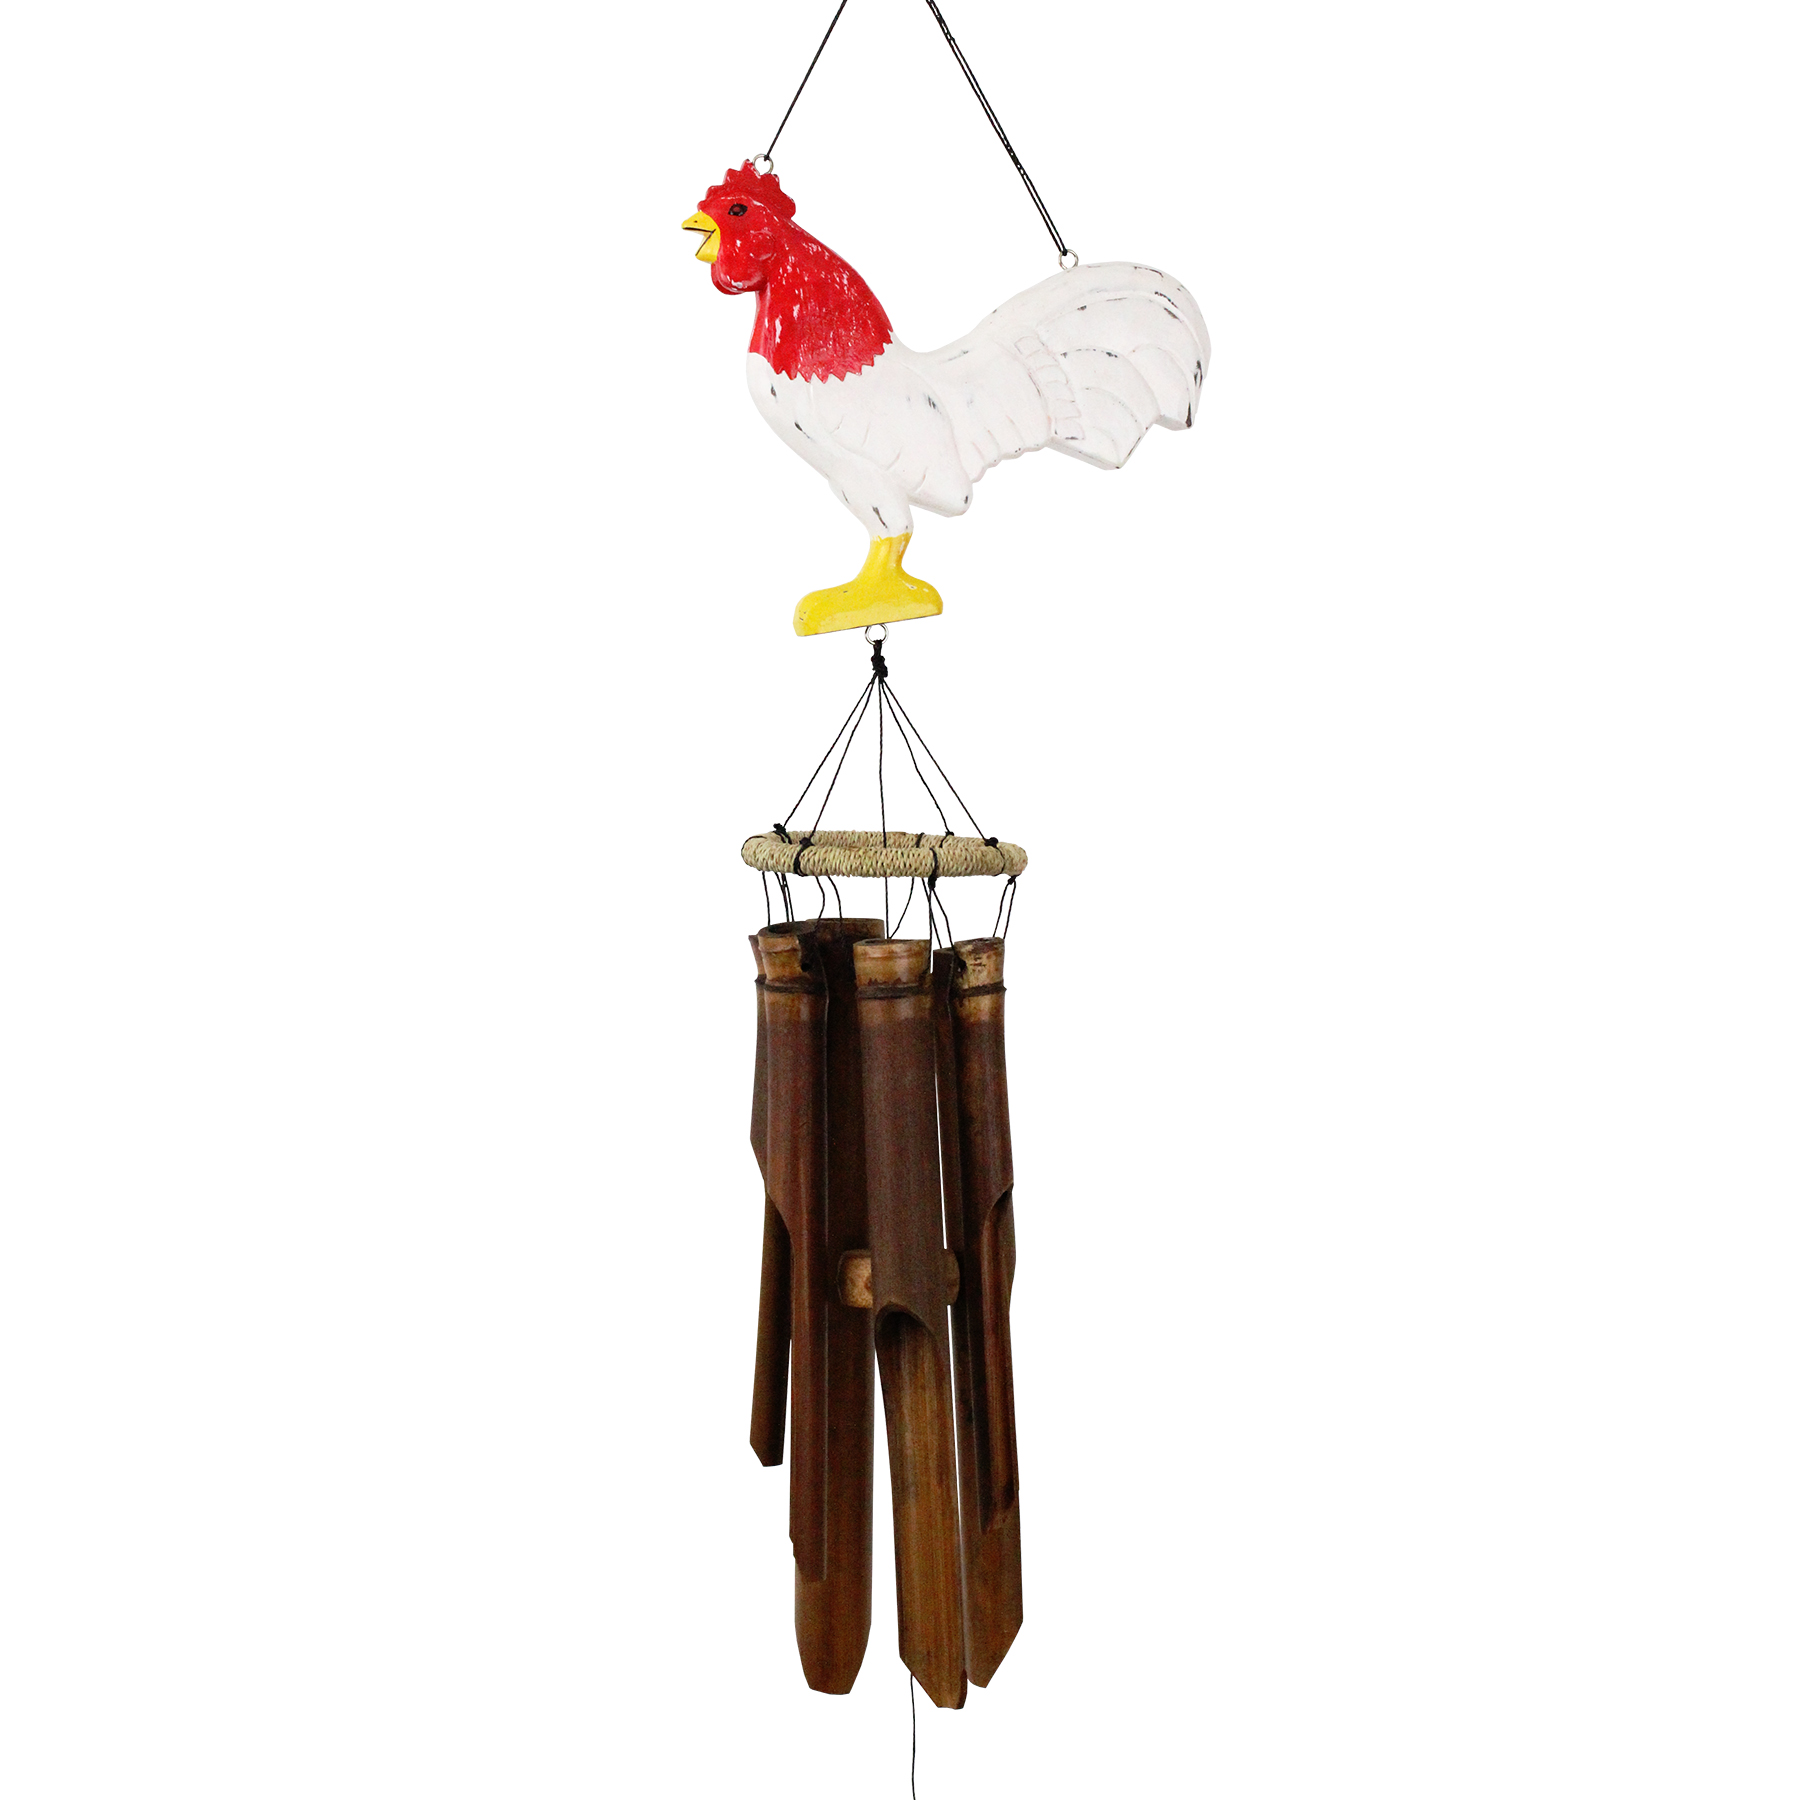 146B - Blizzard Chicken Silhouette Bamboo Wind Chime